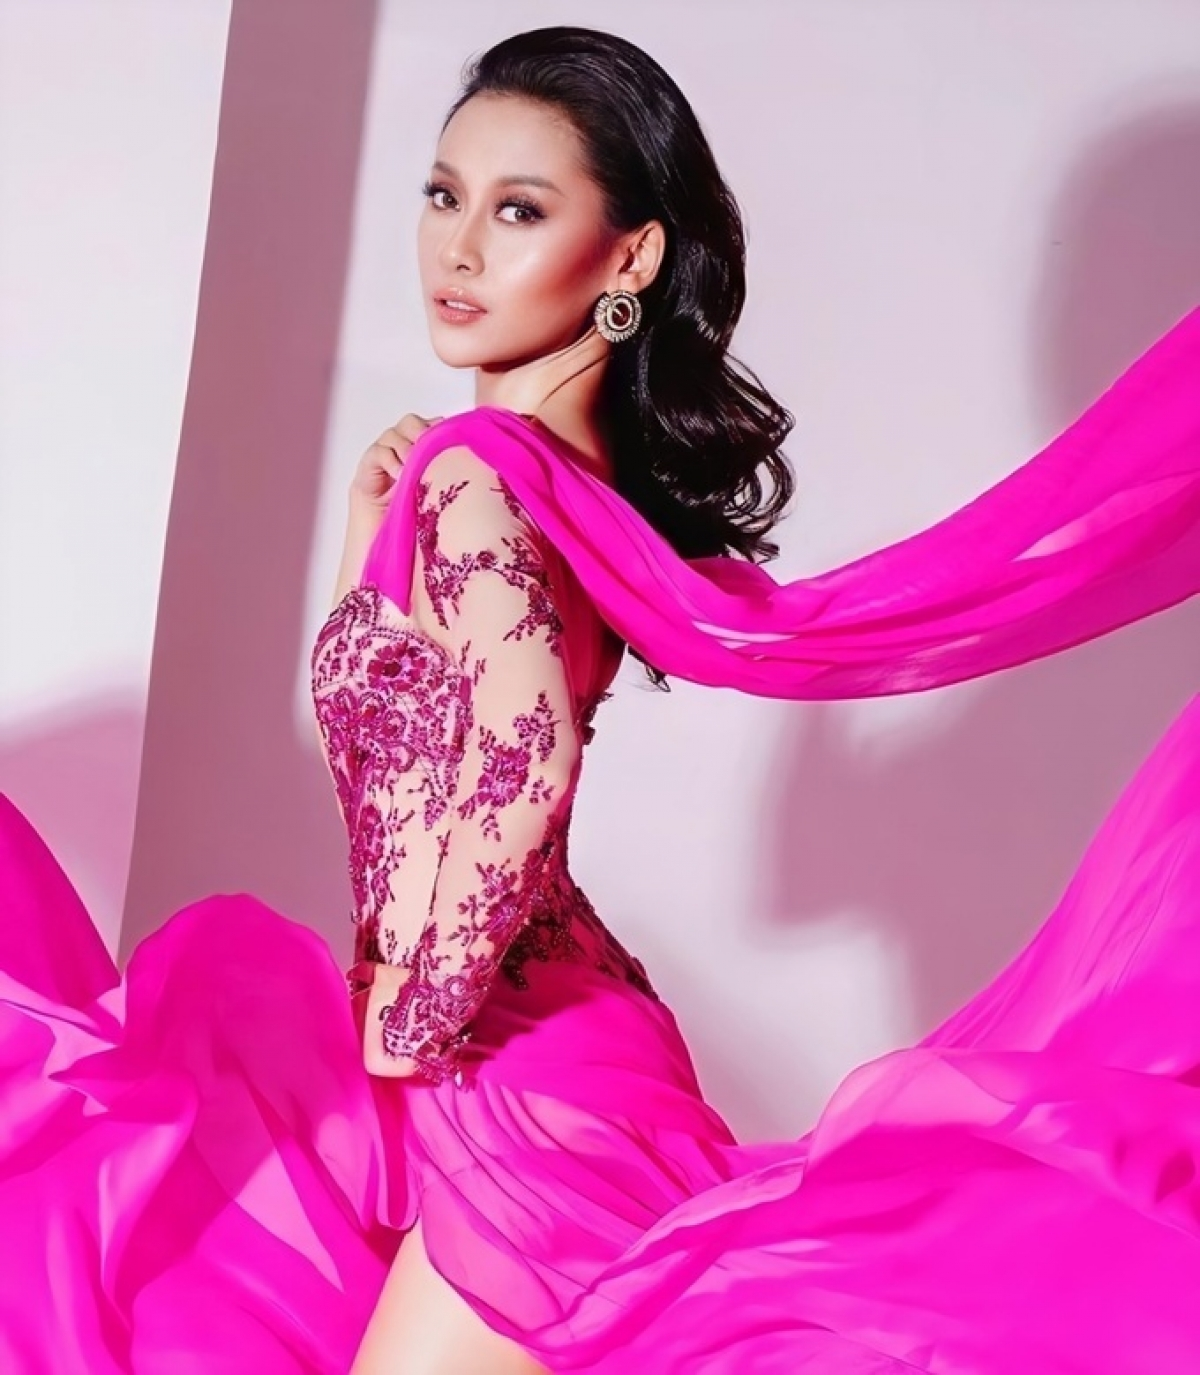 25-year-old Francisca Luhong James of Malaysia, is 1.75 metres tall with measurements of 81-65-90. (Photo: Miss Universe Malaysia)